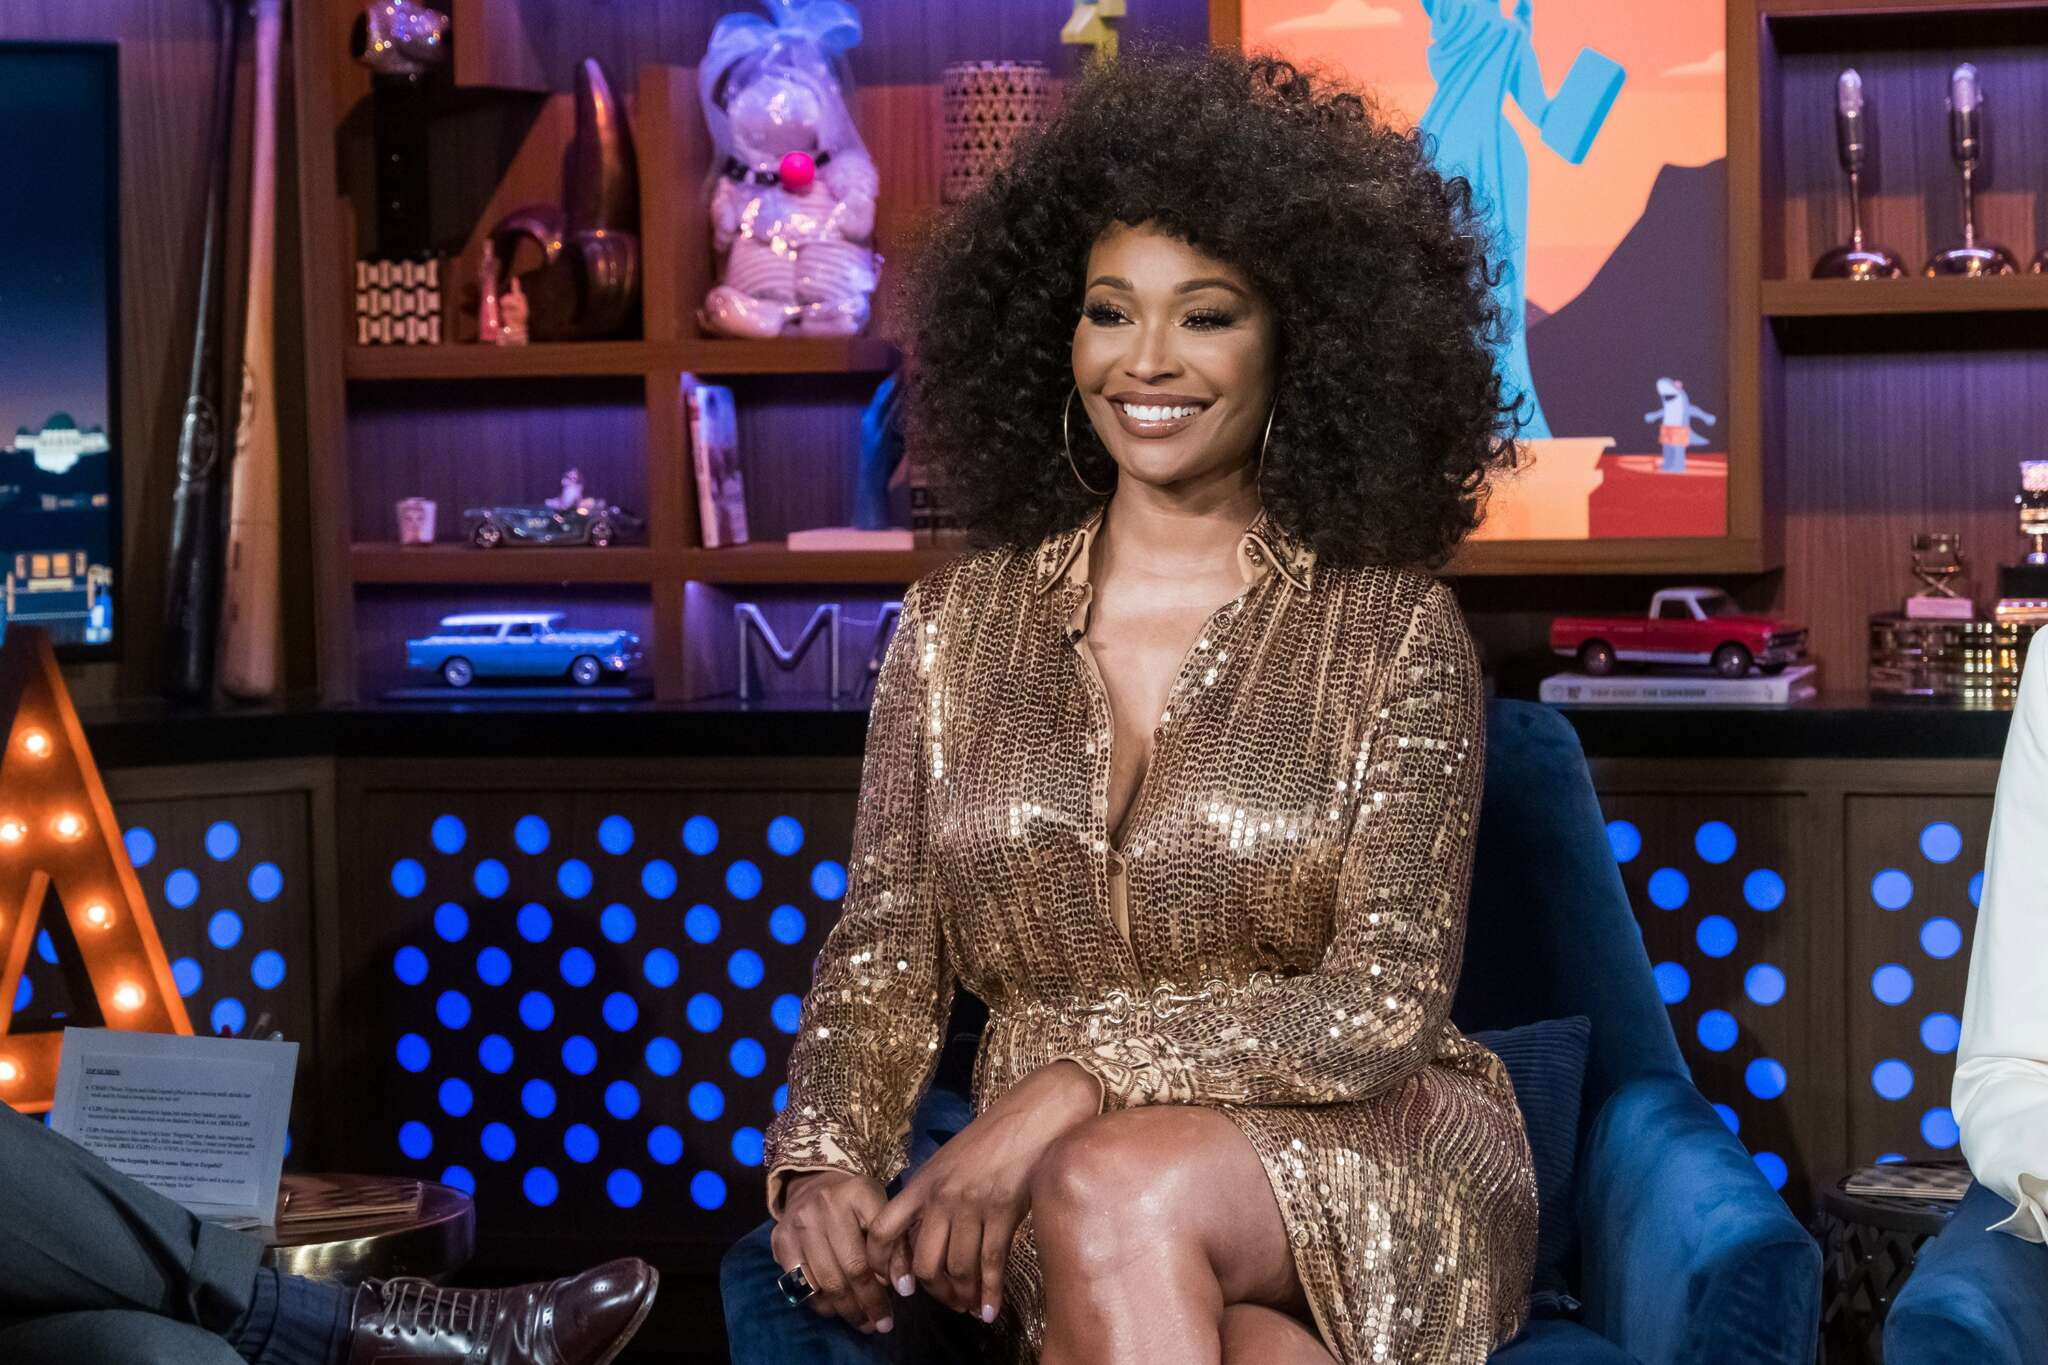 cynthia-bailey-is-praising-two-of-her-favorite-actresses-check-out-the-post-she-shared